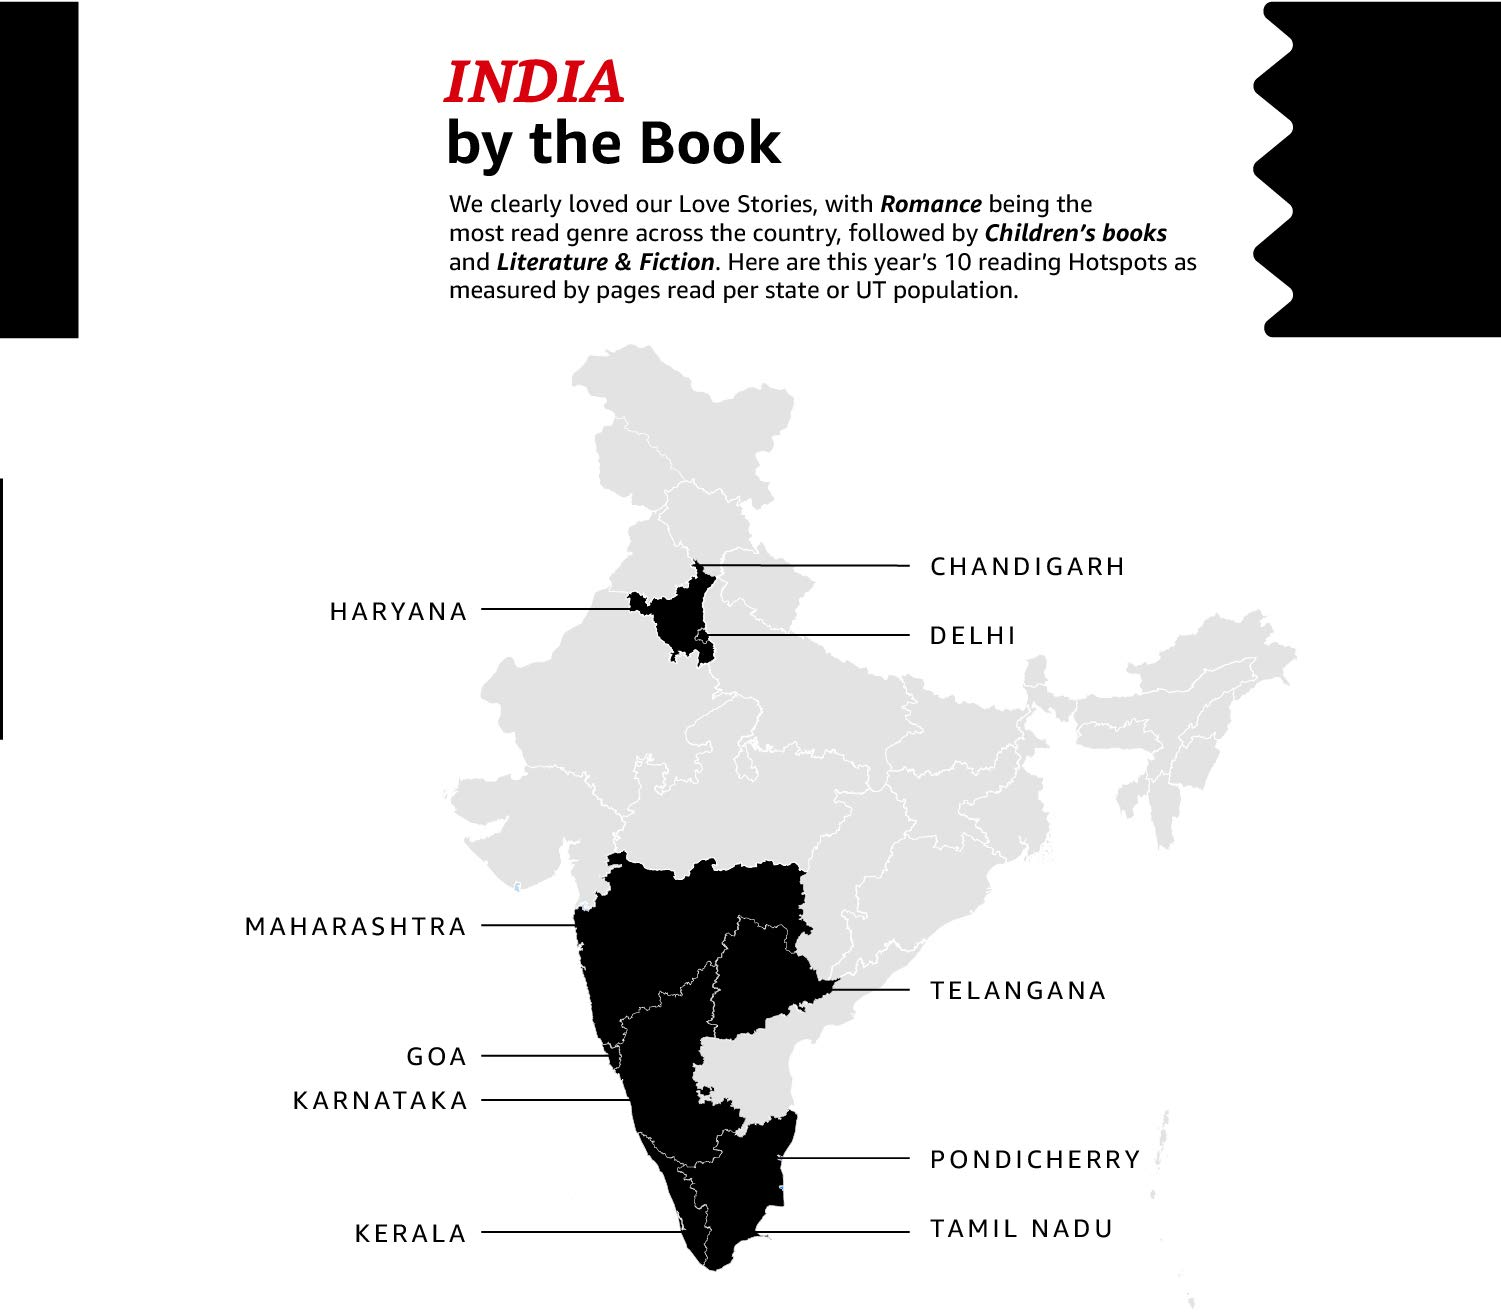 india by the book